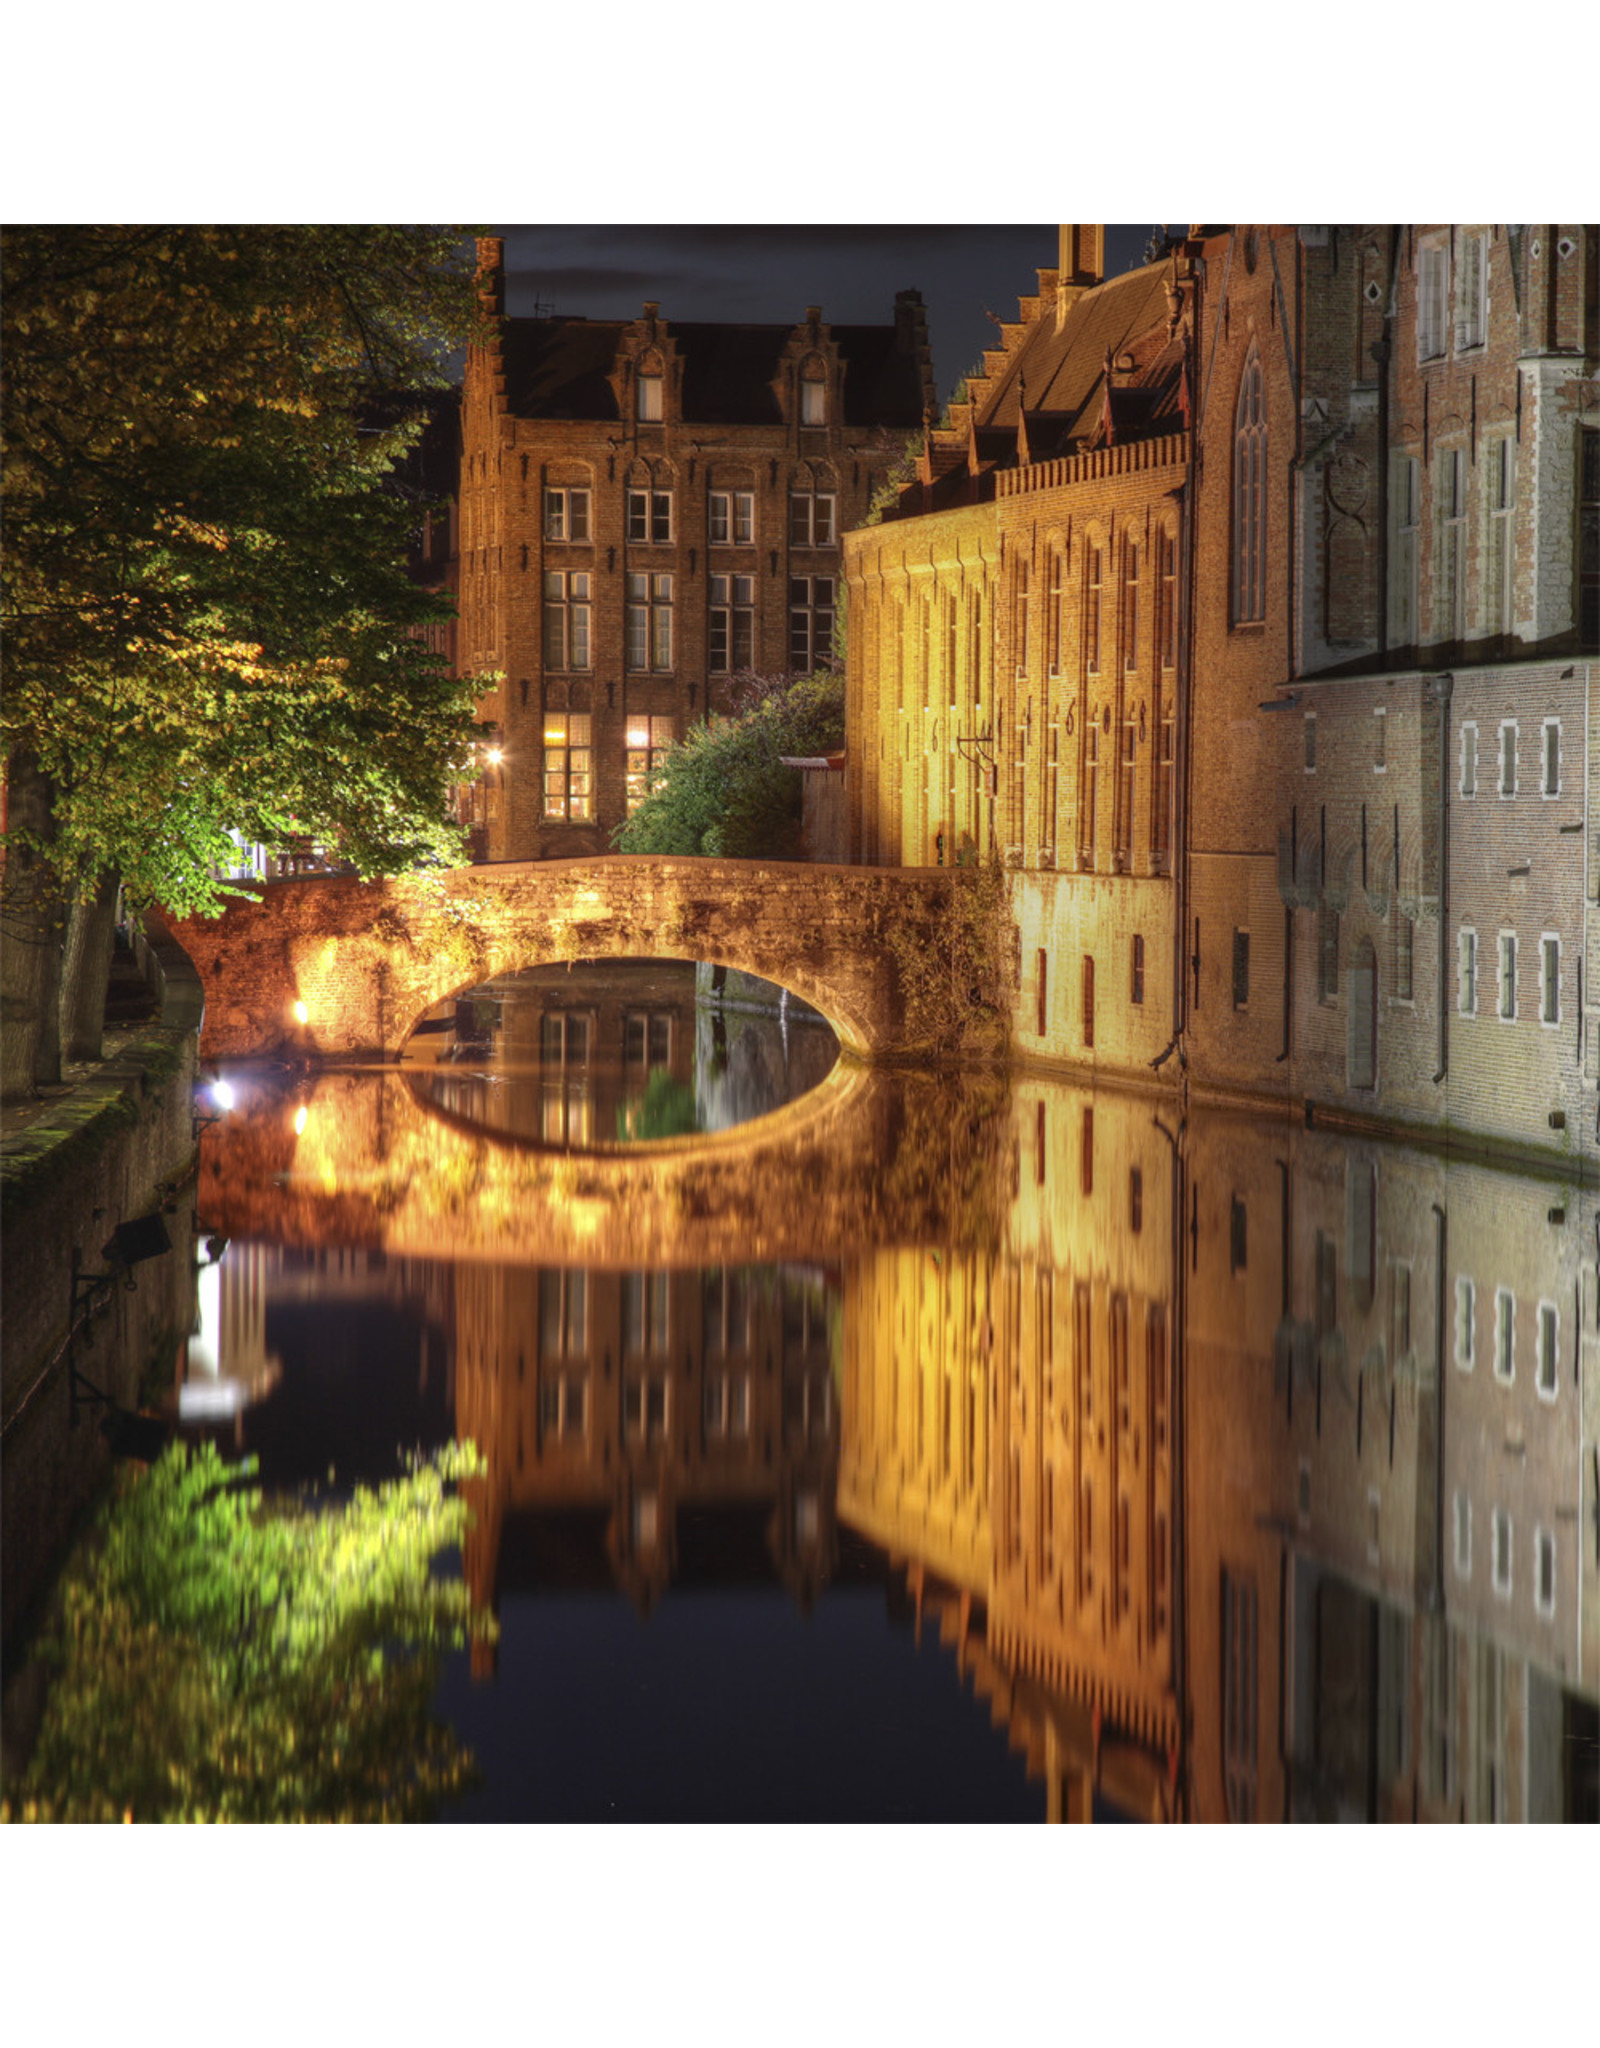 Zen Art & Design Canal in Bruges (Md, 204 Pieces, Artisanal Wooden Jigsaw Puzzle)